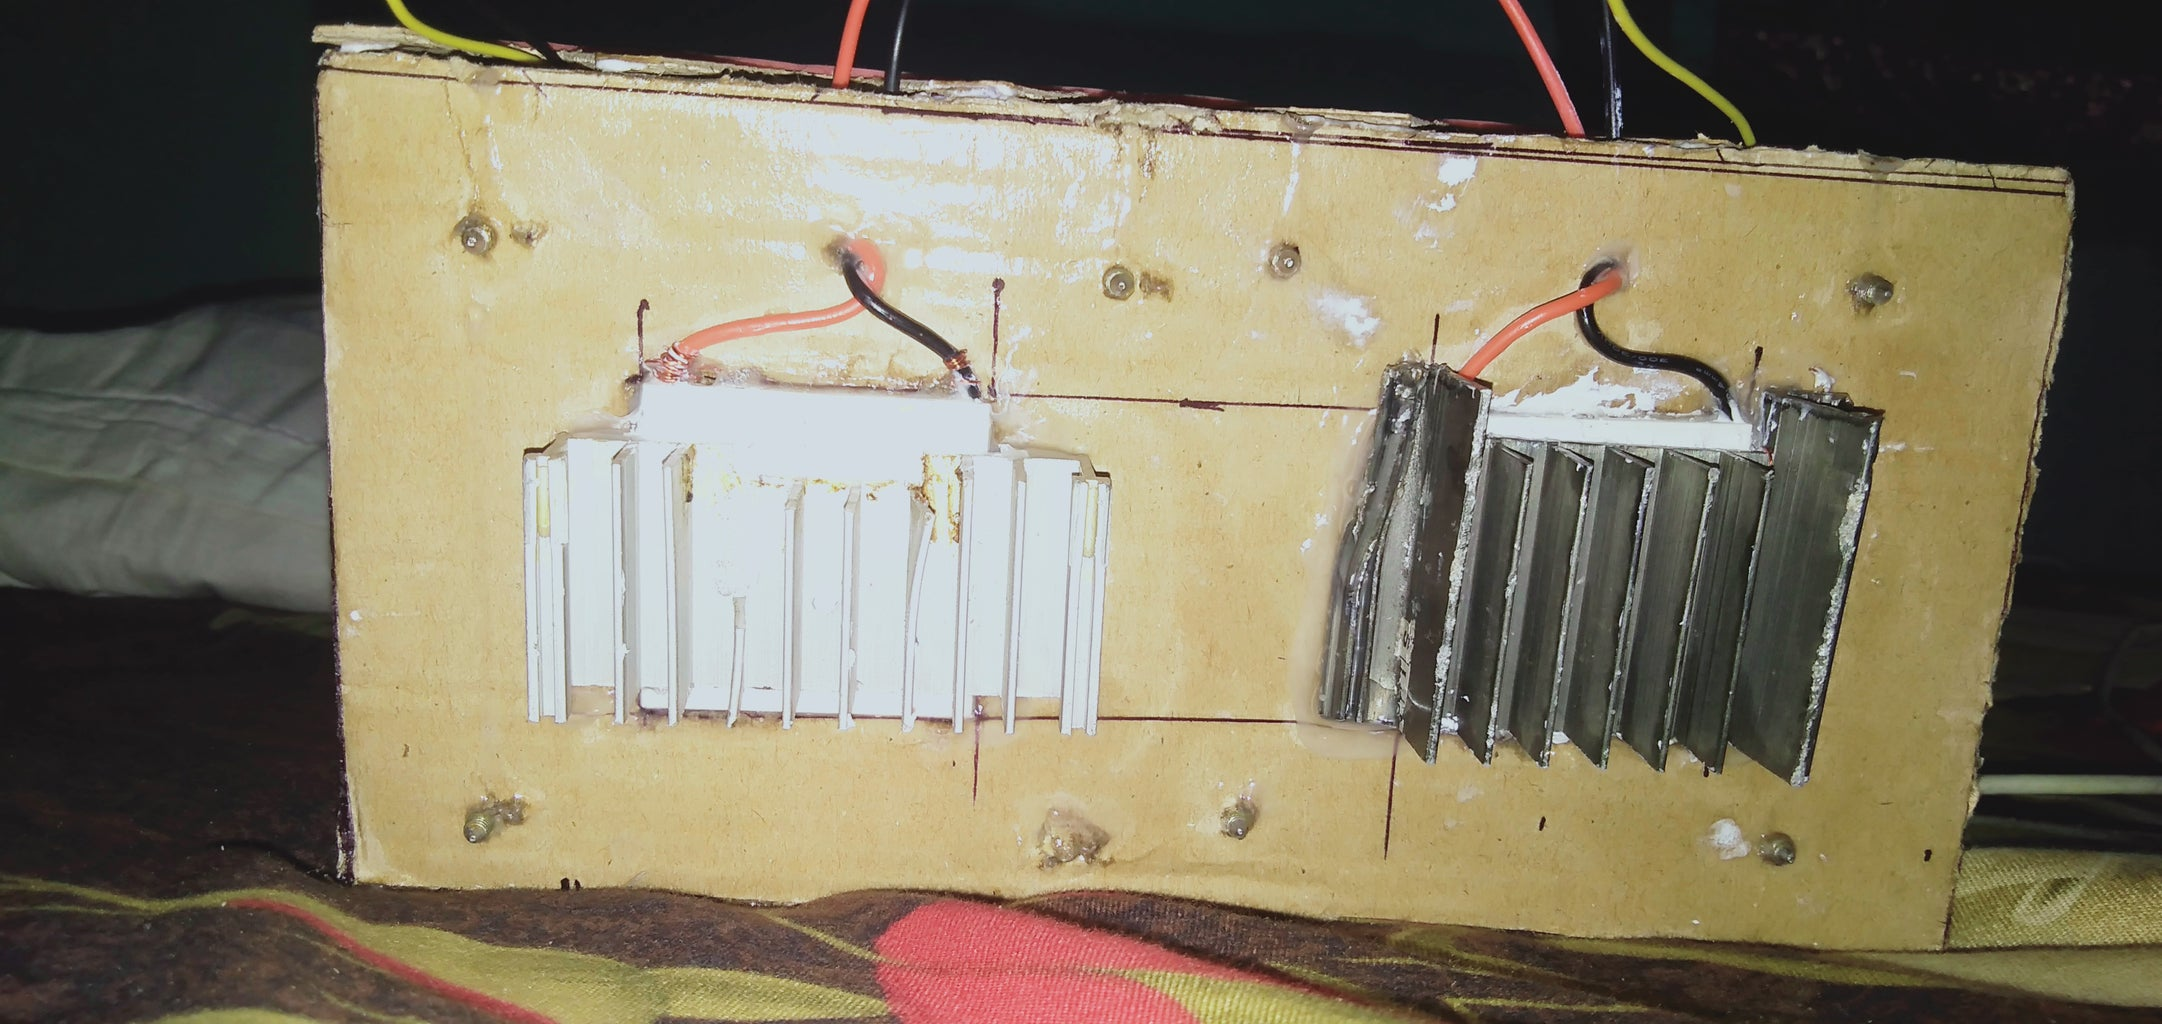 Cutting and Placing the Peltier Module With Thermal Compound and Heat Sinks